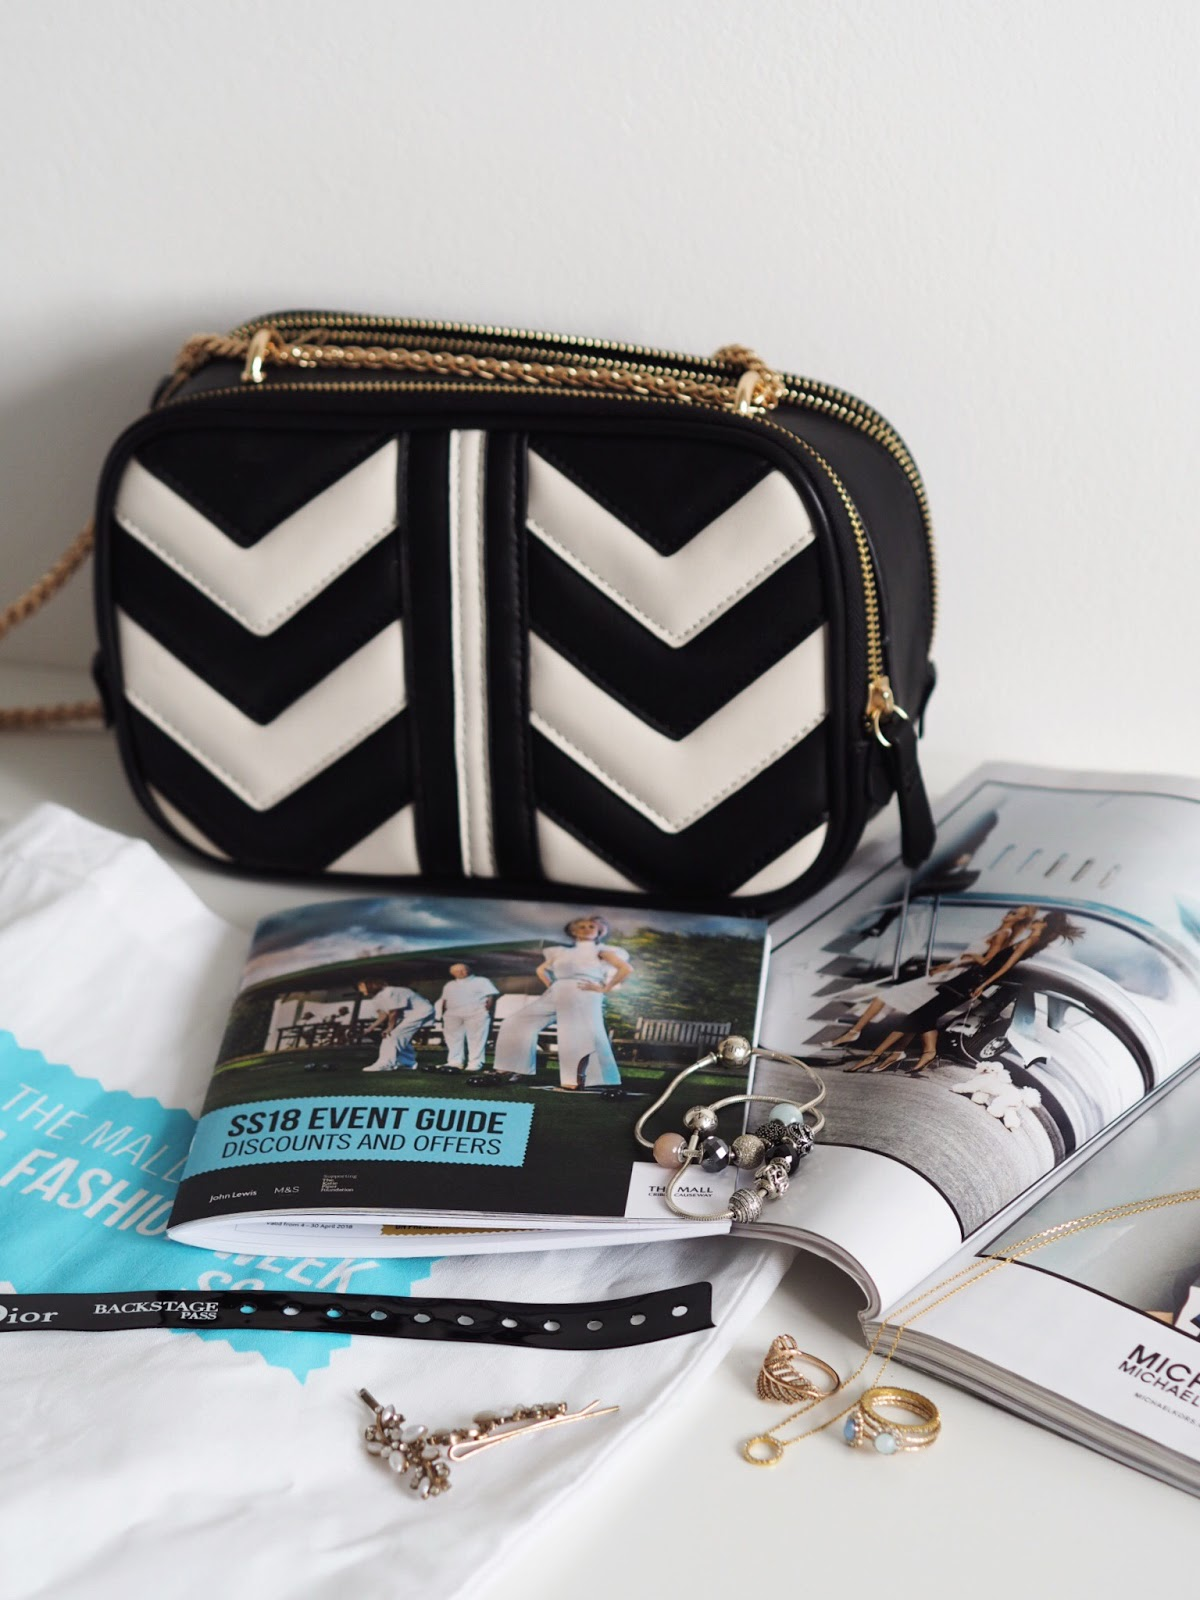 BFWSS18 Event Guide Flat Lay with Pandora Essence Bracelets and Rings and a chevron Gucci Dupe Monochrome Accessorize bag